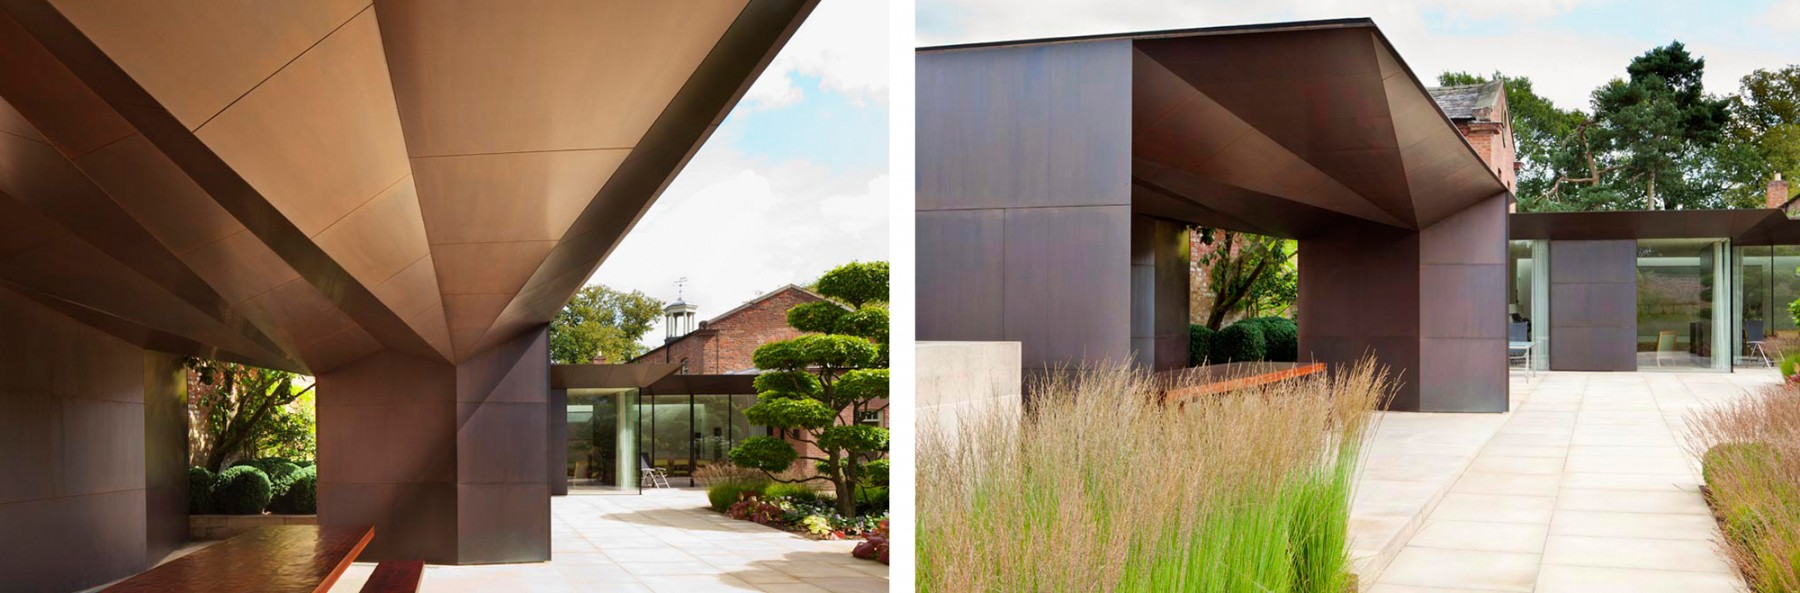 Garden-Grange-Pavilion-landscape-cheshire-cogshall-bronze-copper-room-gate-Tom-Stuart-smith-Jamie-Fobert-Architects-3